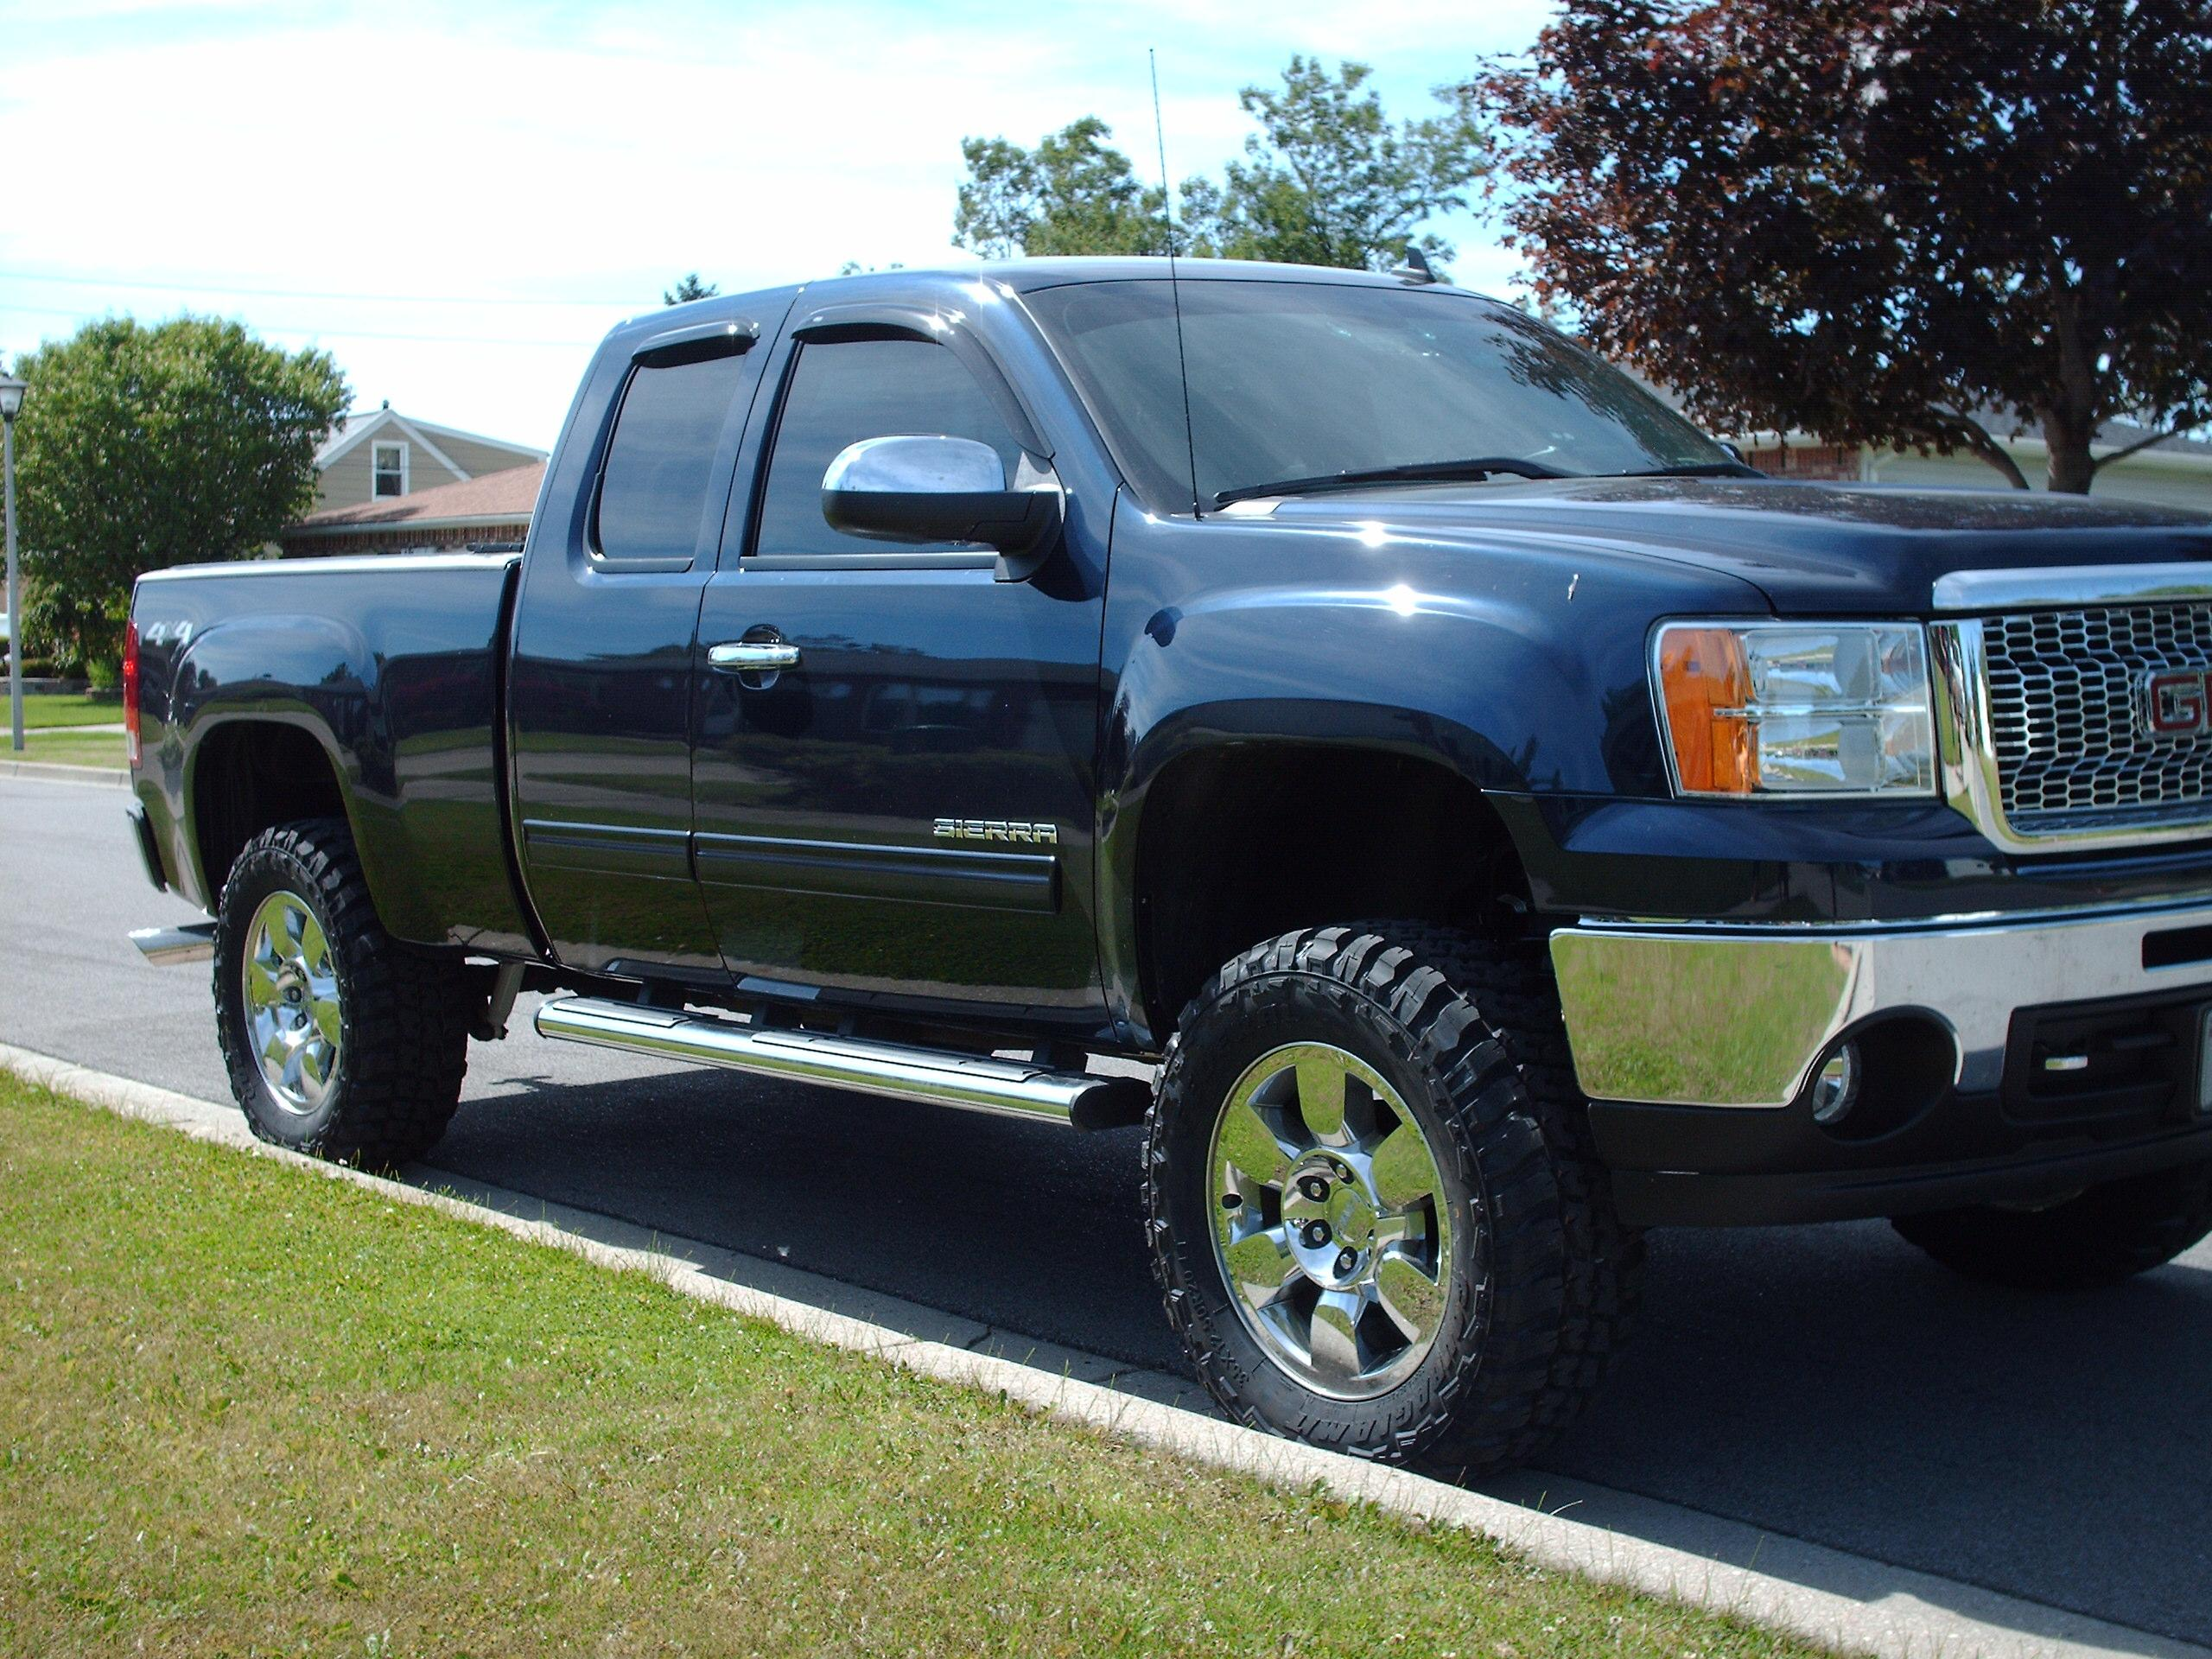 notfeelinu 2010 gmc sierra 1500 extended cab specs photos. Black Bedroom Furniture Sets. Home Design Ideas